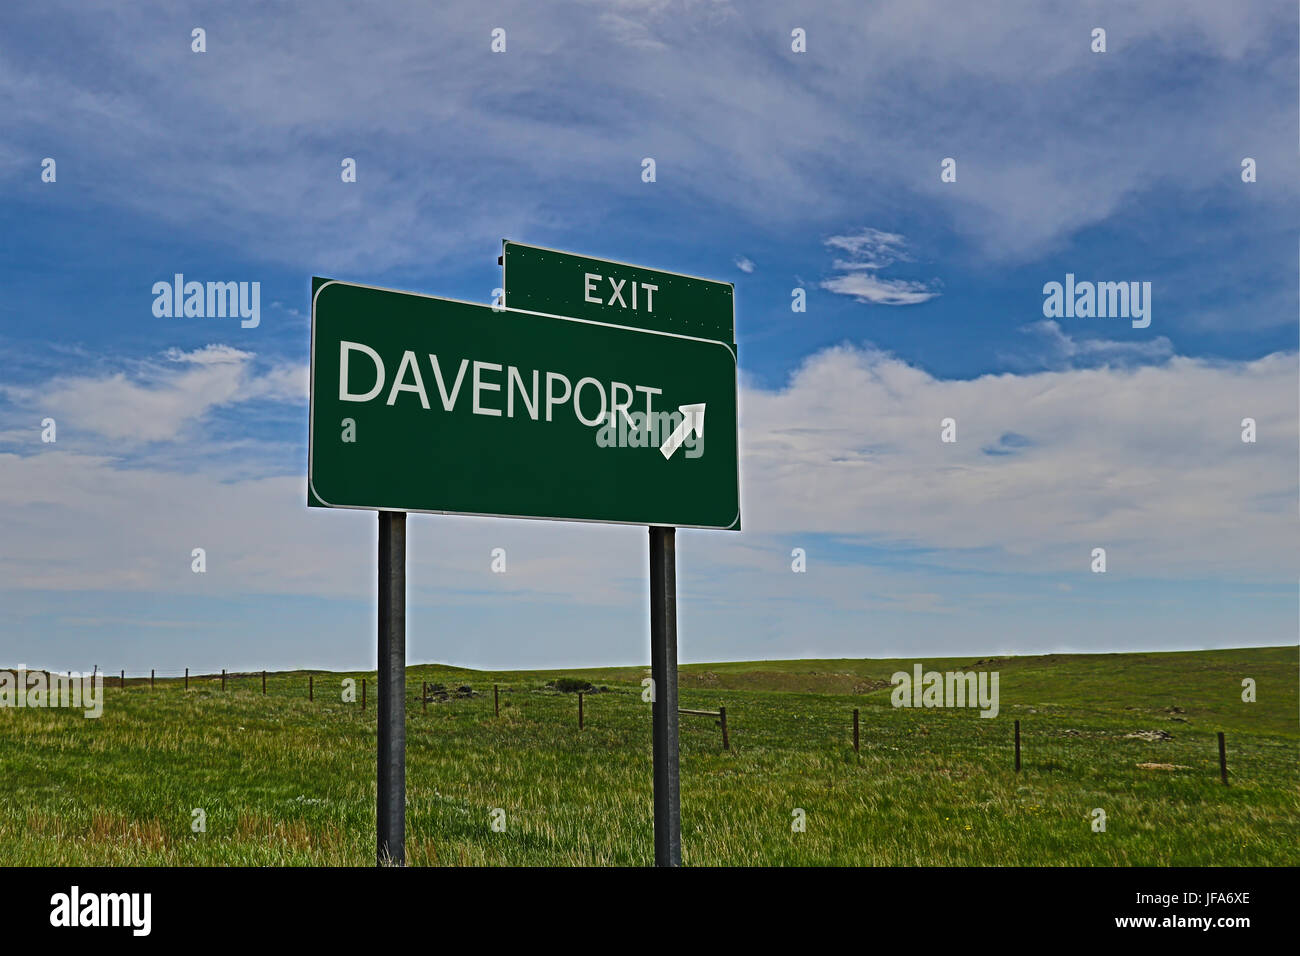 US Highway Exit Sign for Davenport - Stock Image